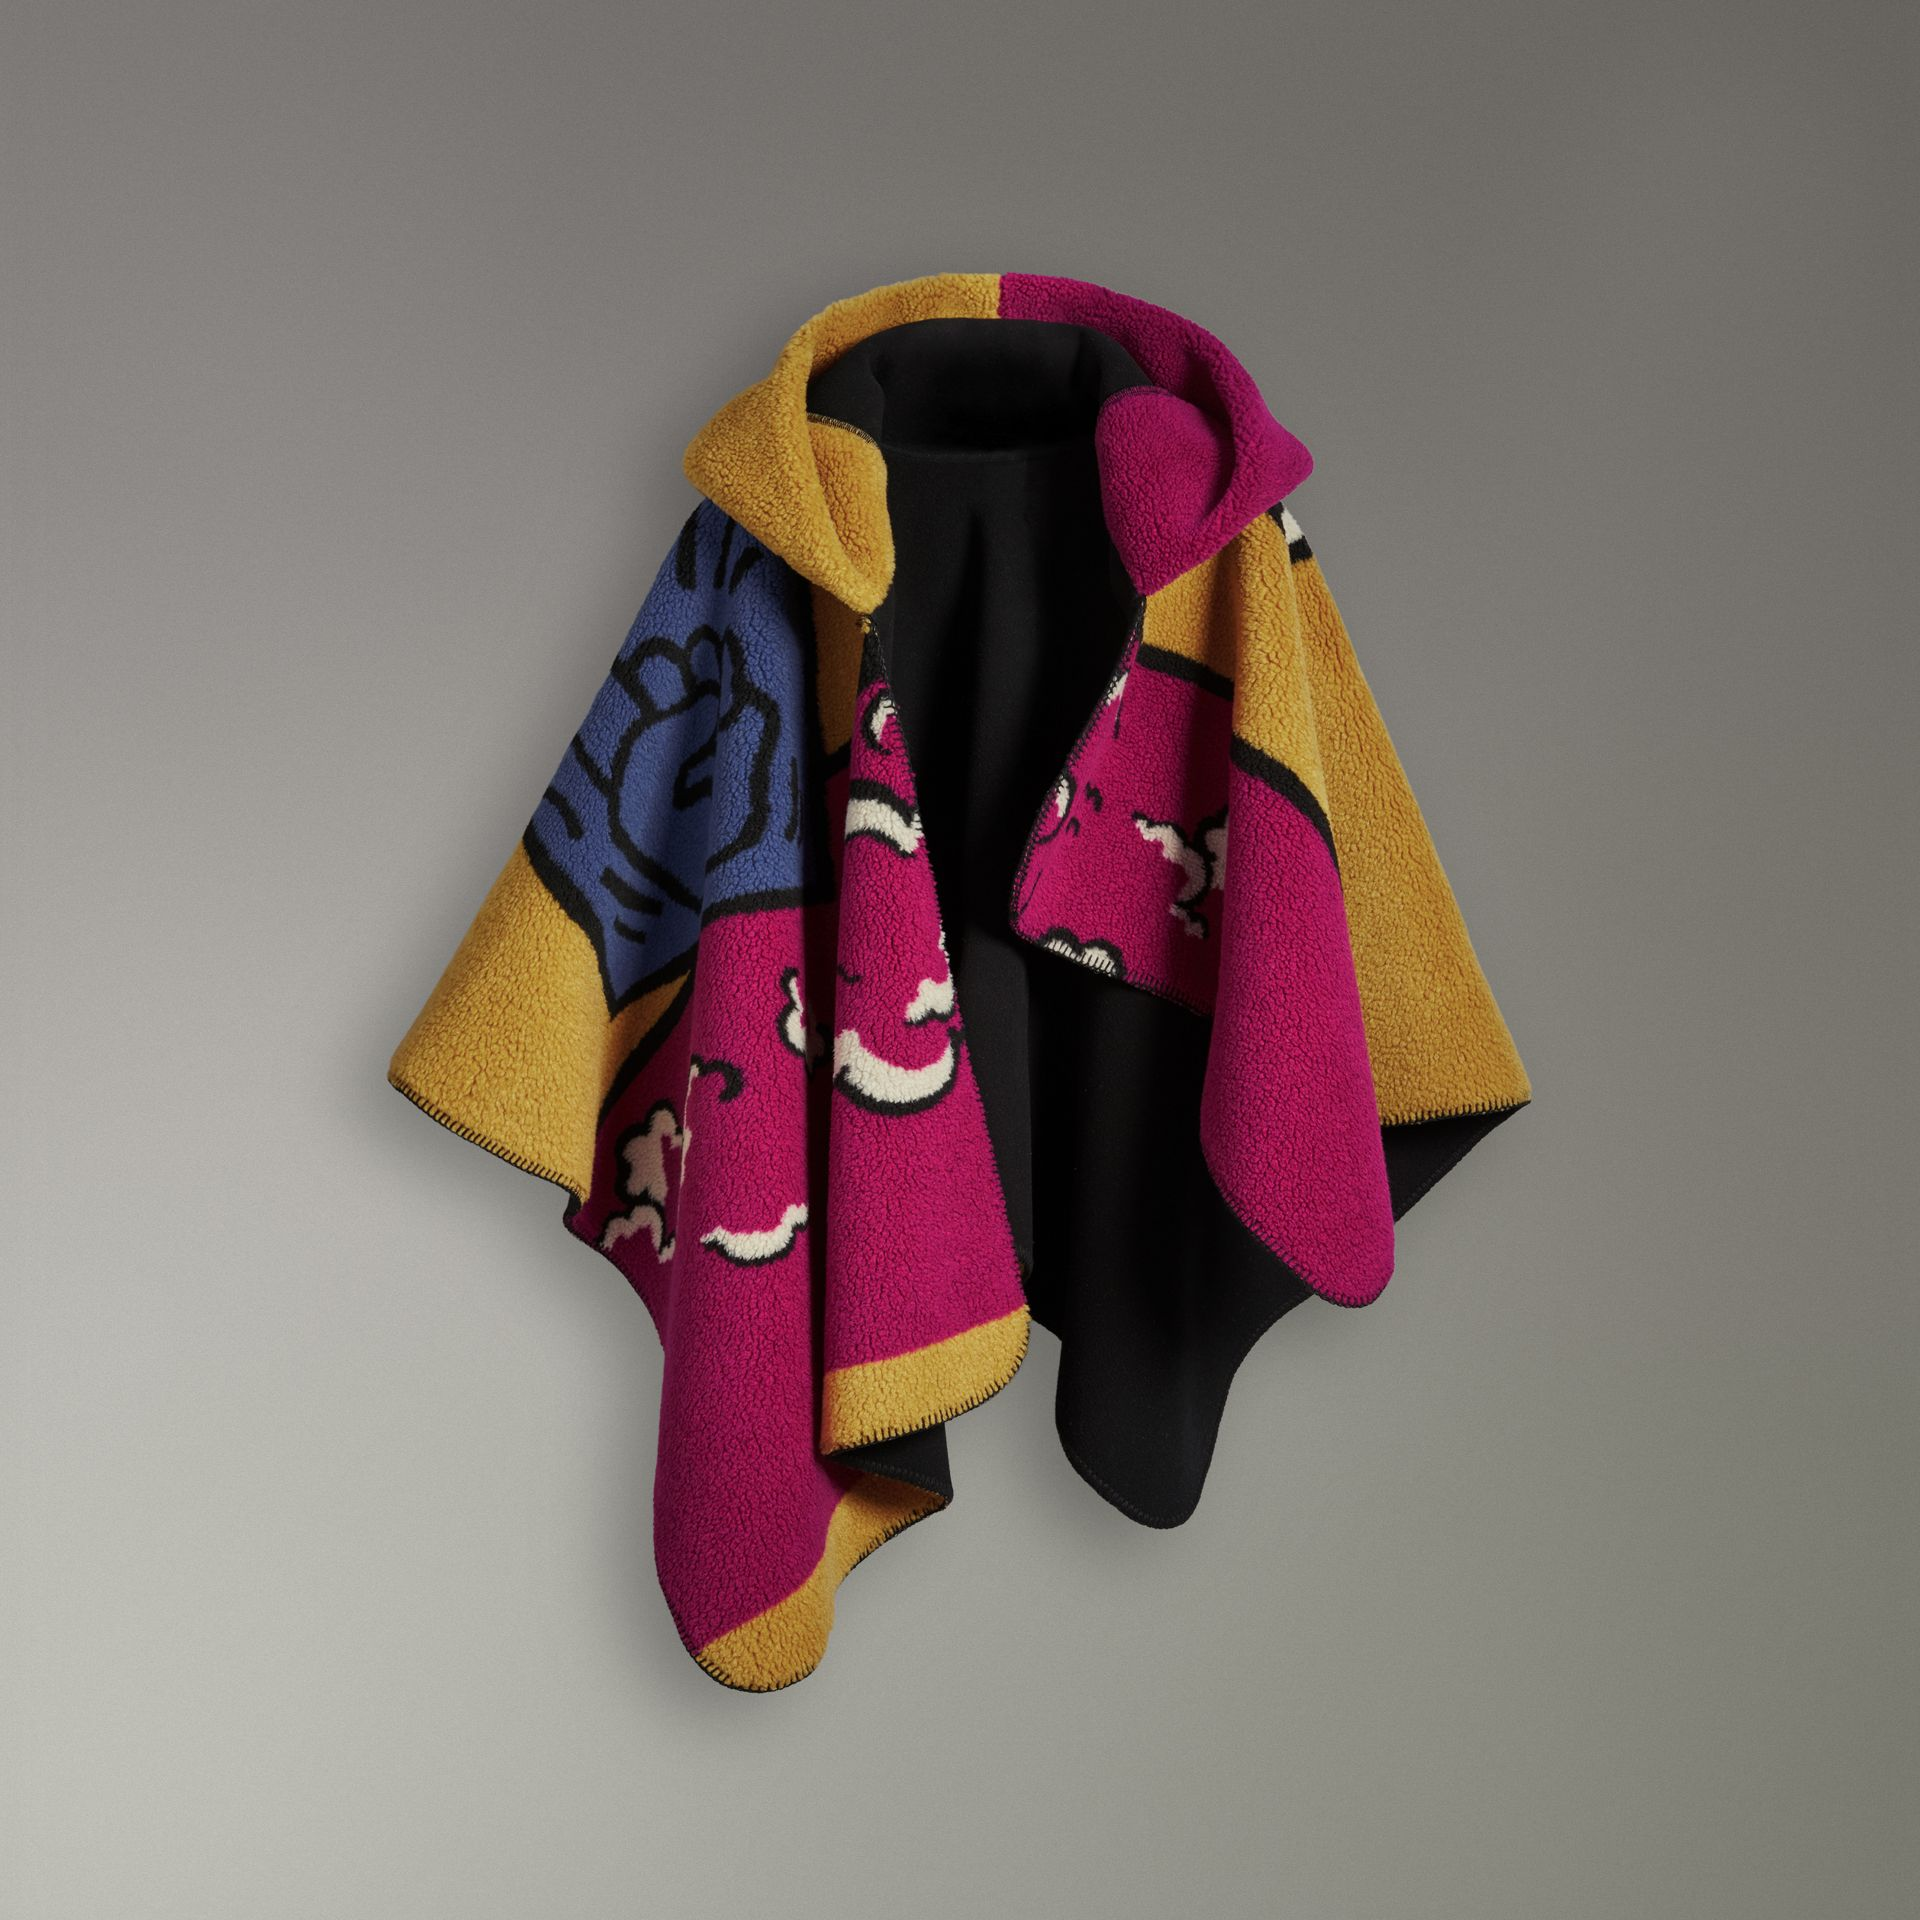 Poster Graphic Fleece Jacquard Hooded Poncho in Multicolour - Women | Burberry United States - gallery image 3